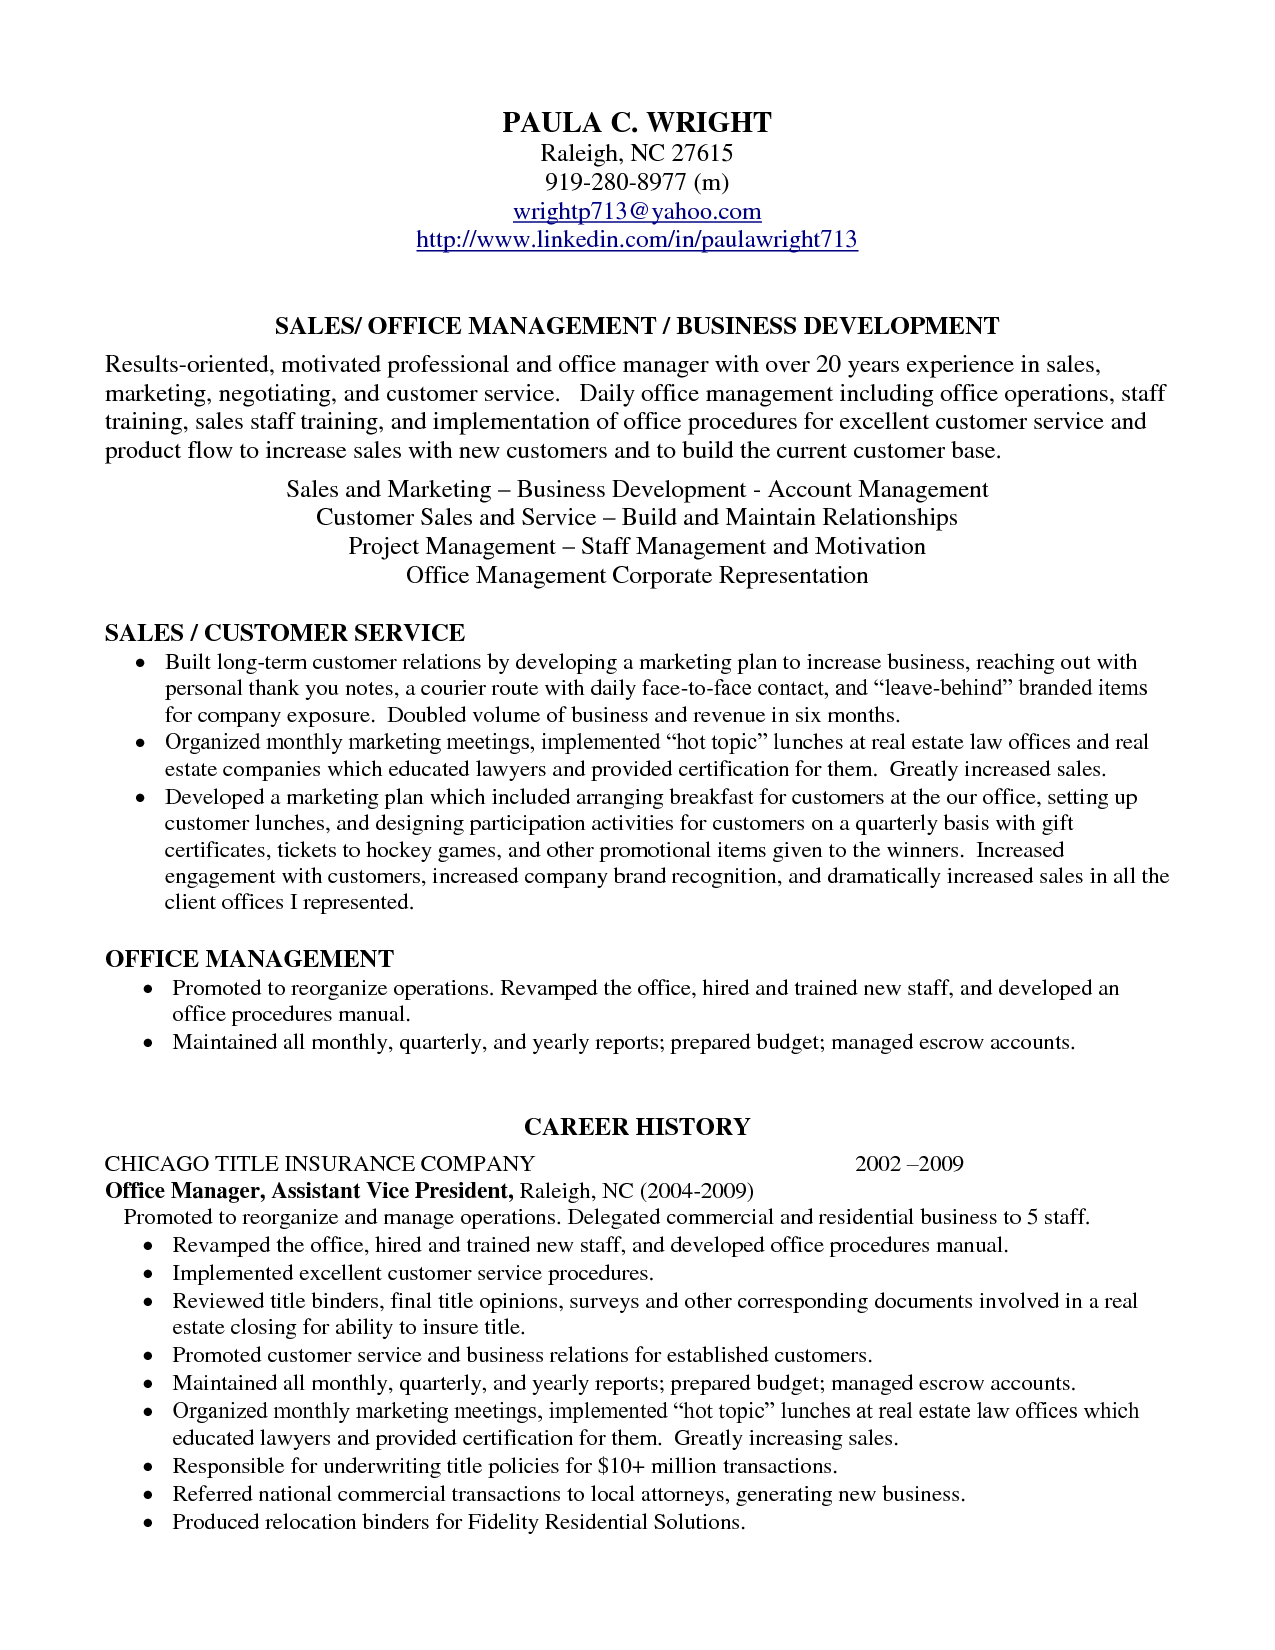 Resume Interests Examples Professional Profile Resume Examplesresume Professional Profile